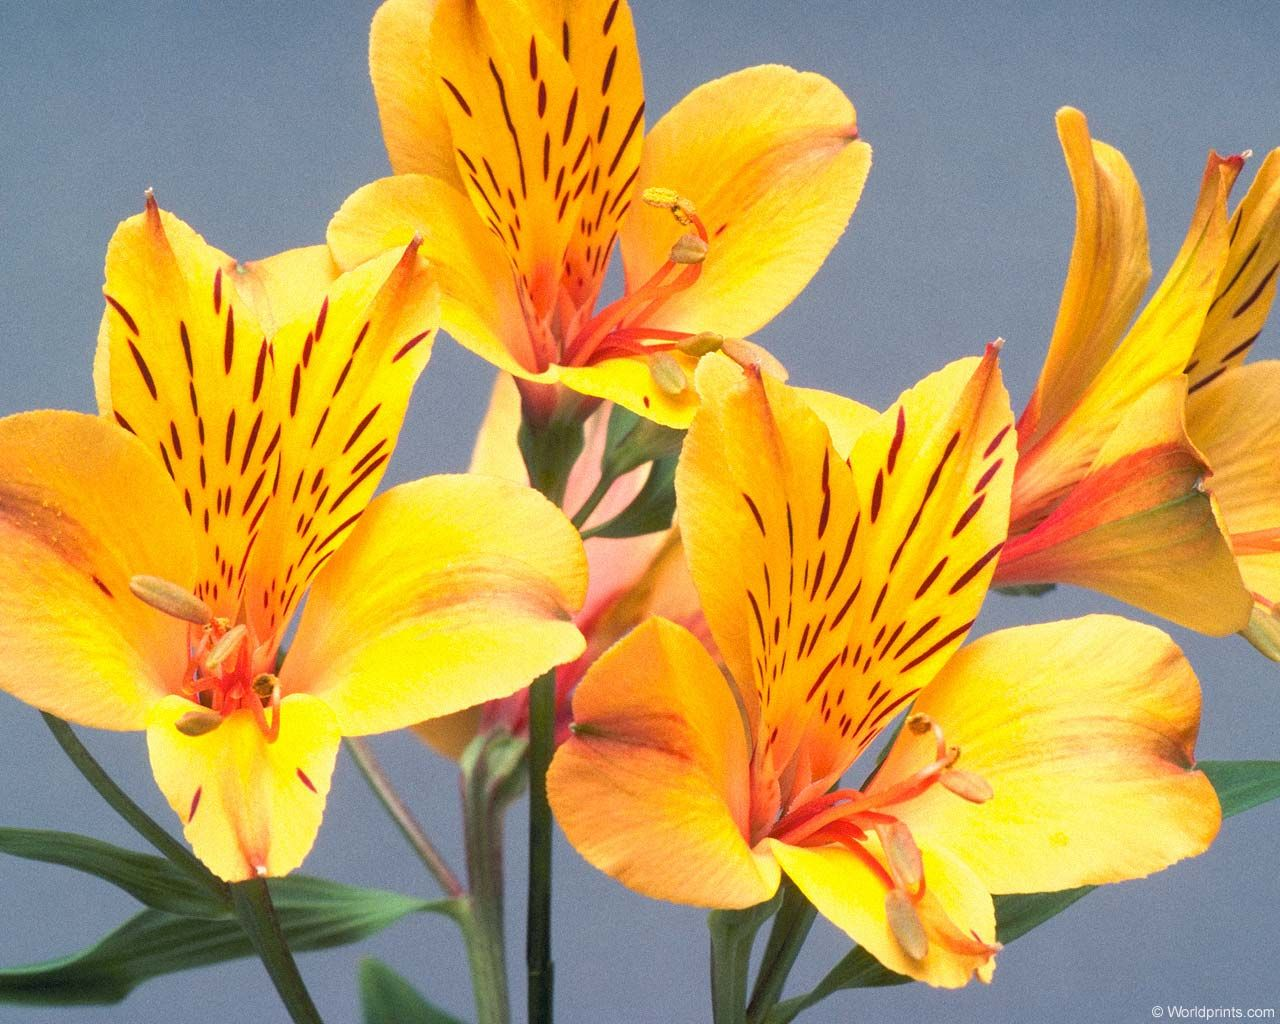 Flower meanings lily - Alstroemeria Peruvian Lily Meaning Devotion Wealth